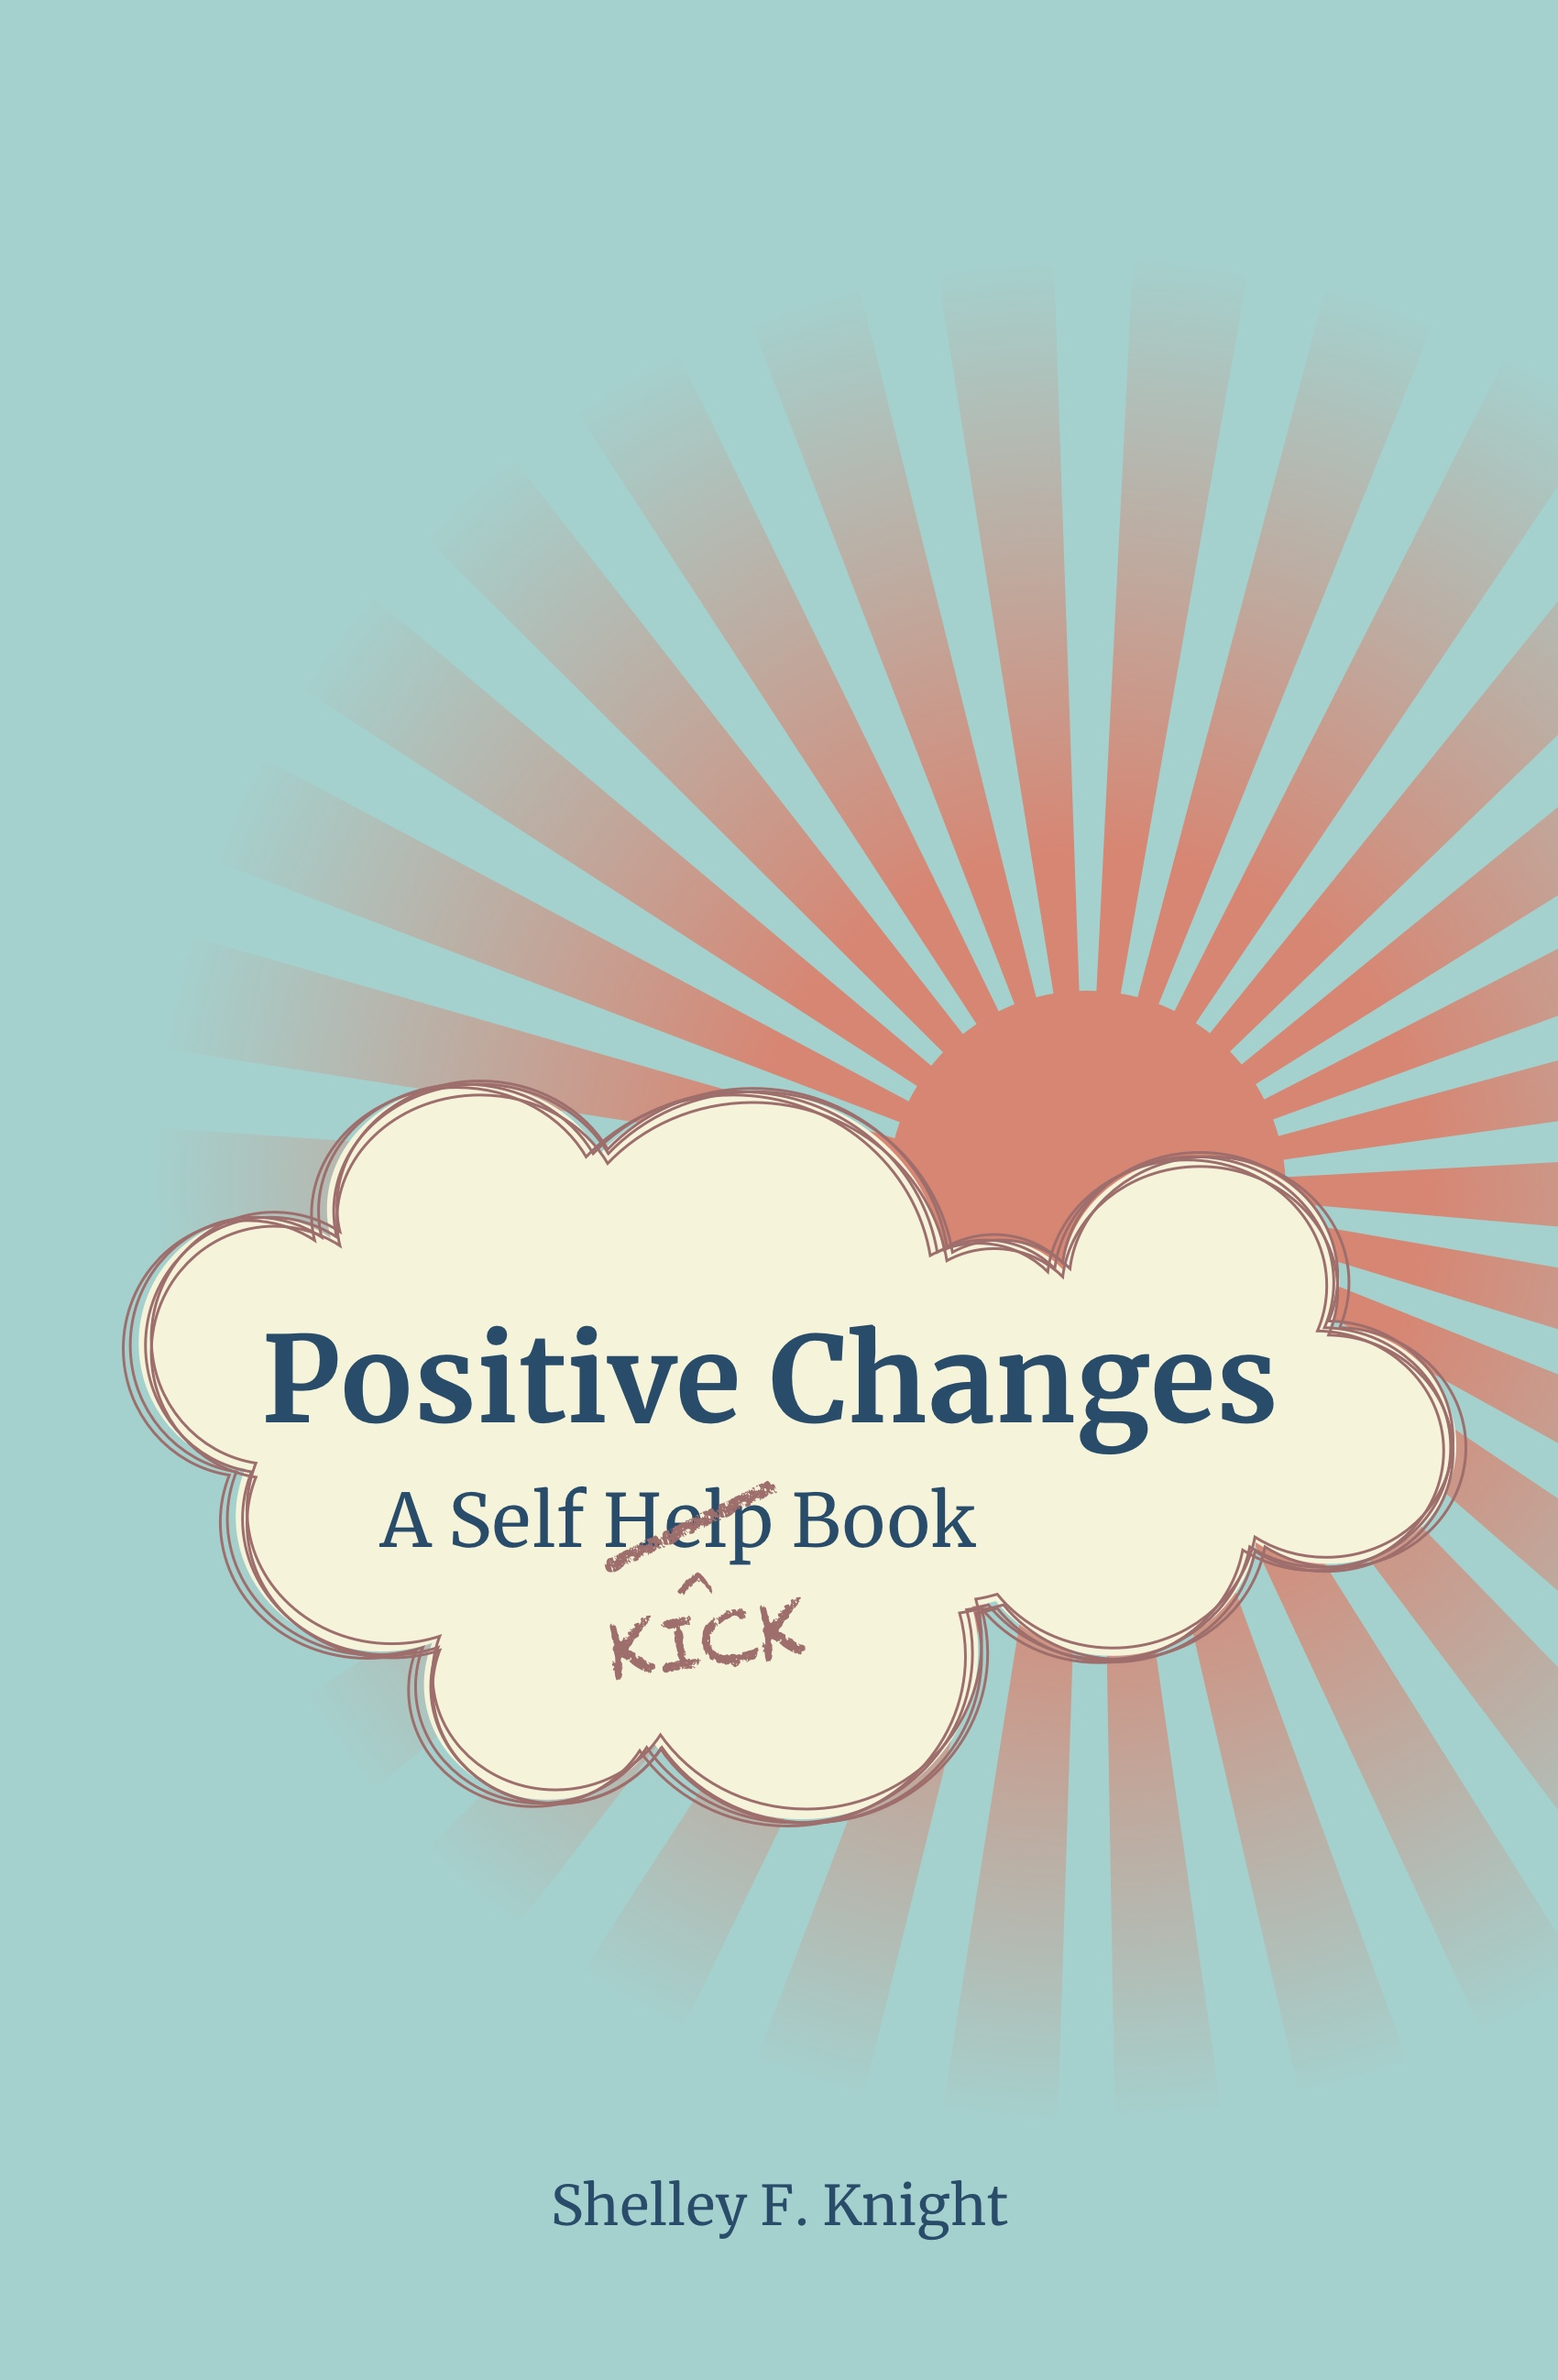 My book contains chapters on how to release negative emotions.